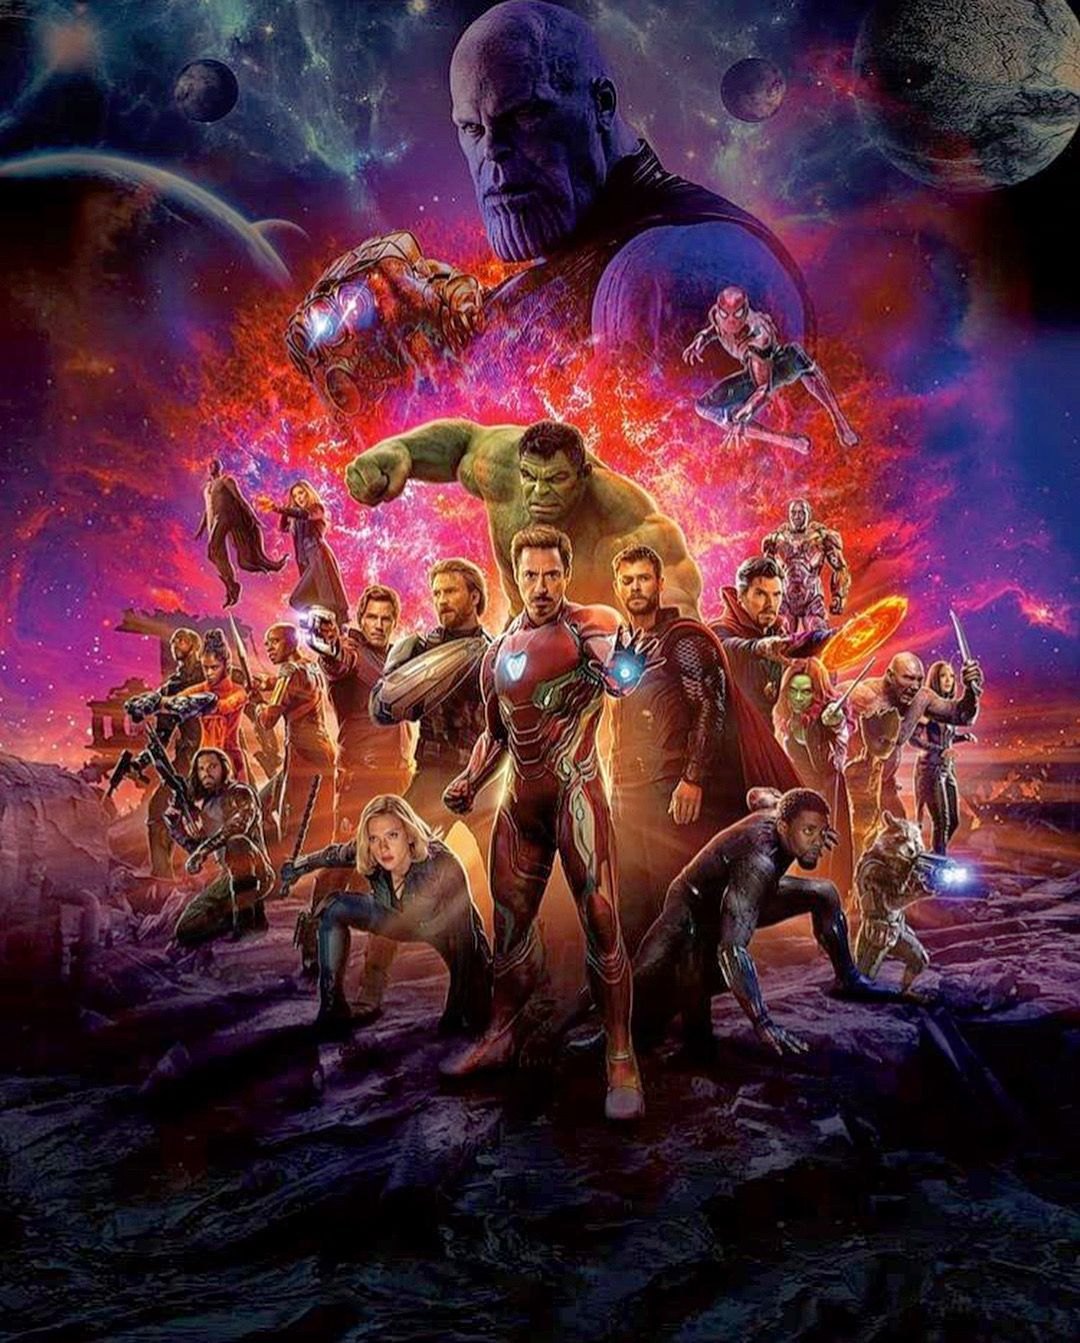 The Chinese Theatrical Poster Without Text For Infinity War Marvel Vs Dc Comics Peliculas Marvel Regalos Marvel